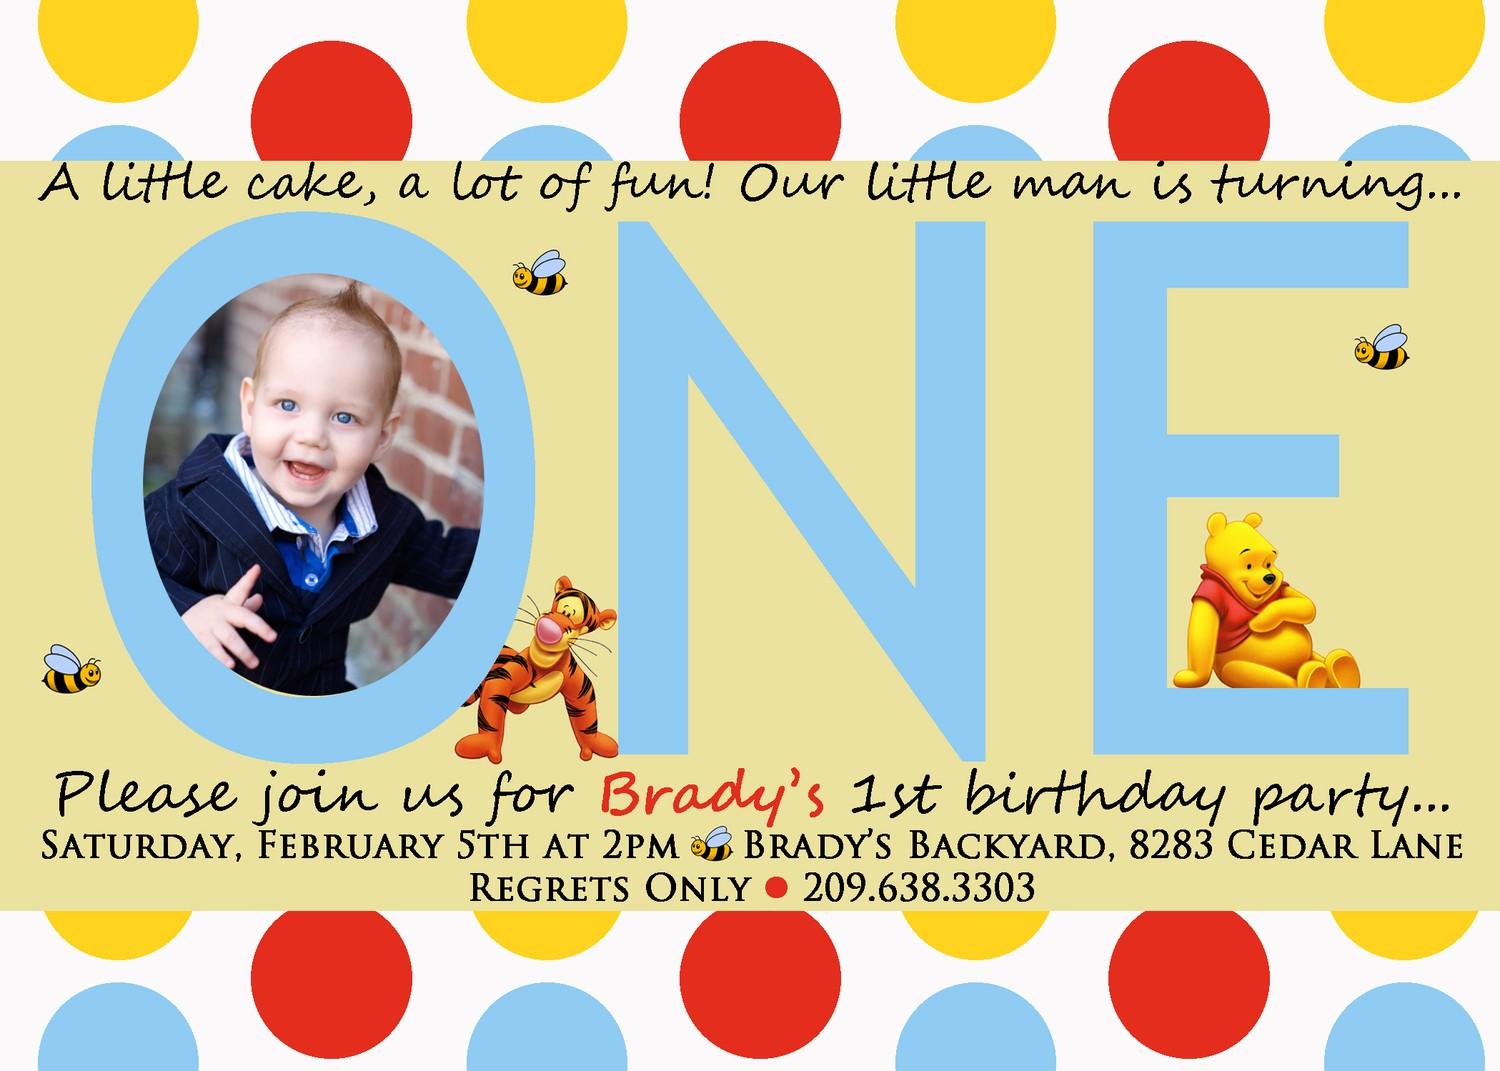 Formidable Winnie Pooh 1st Birthday Invitations Templates Birthday Invitations Template Birthday Invitations Etsy invitations First Birthday Invitations